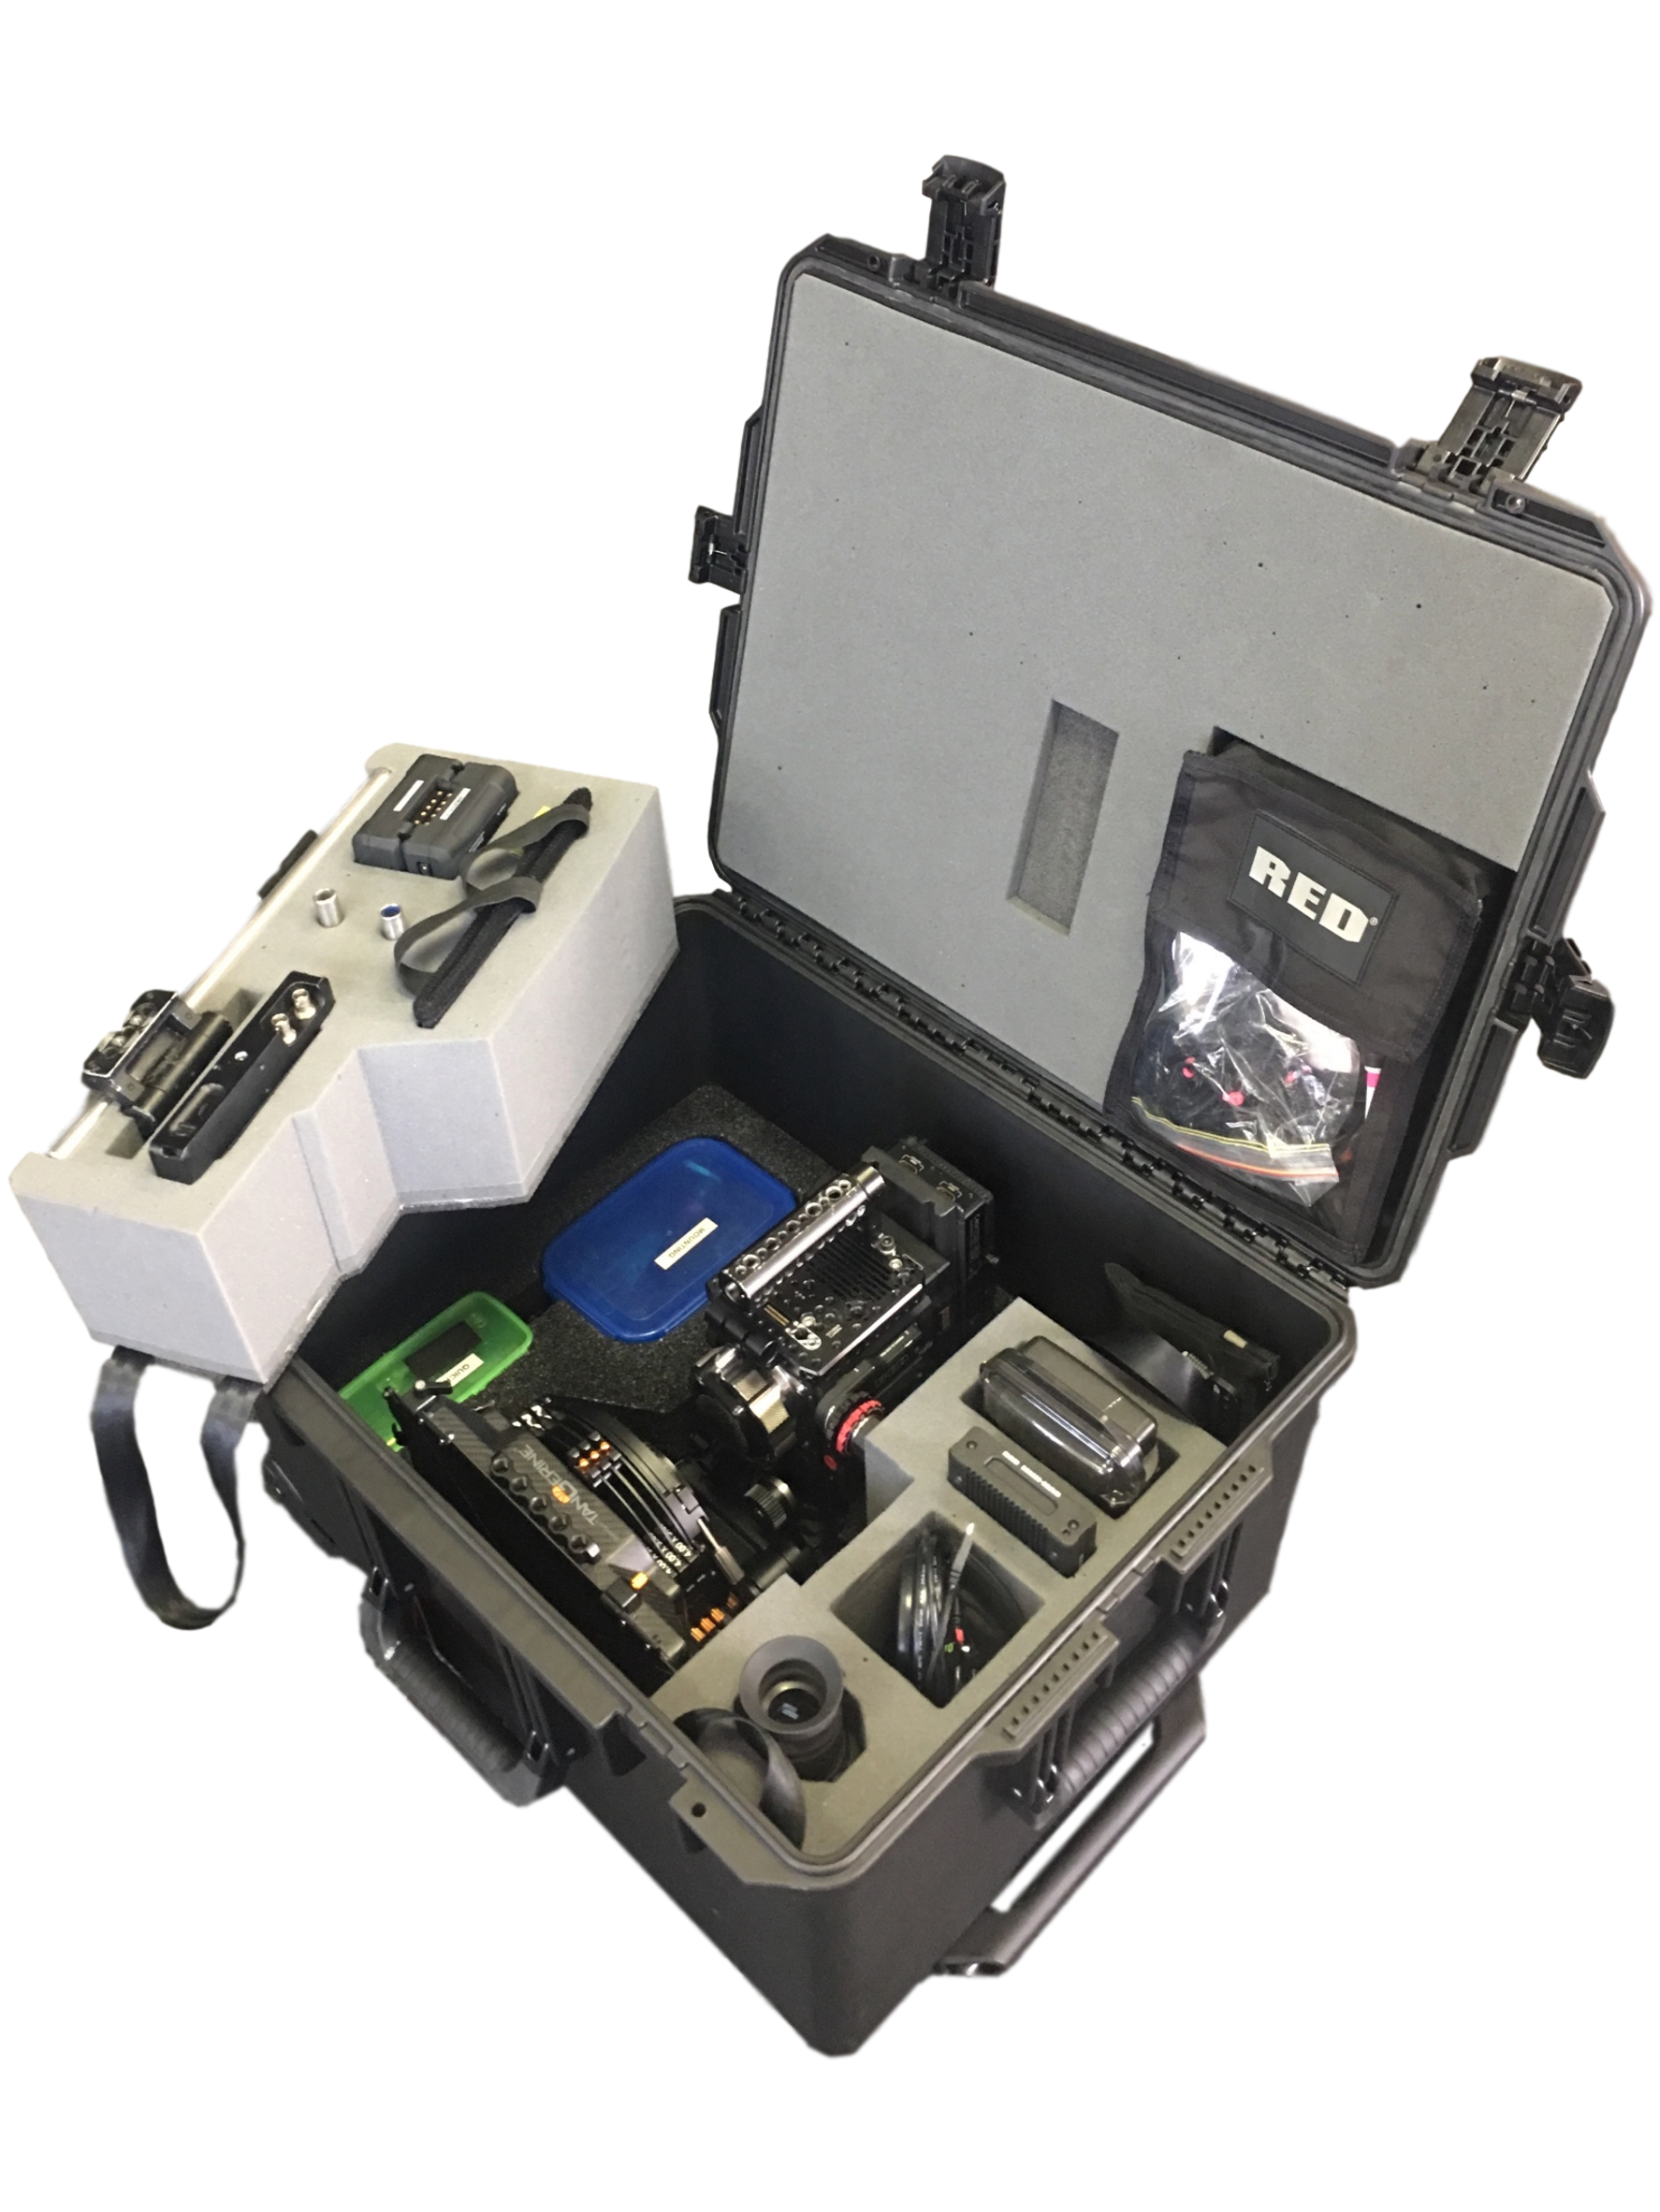 29-400 PU & Etha-220 Camera Case Fit-out with Removable Accessory Inserts